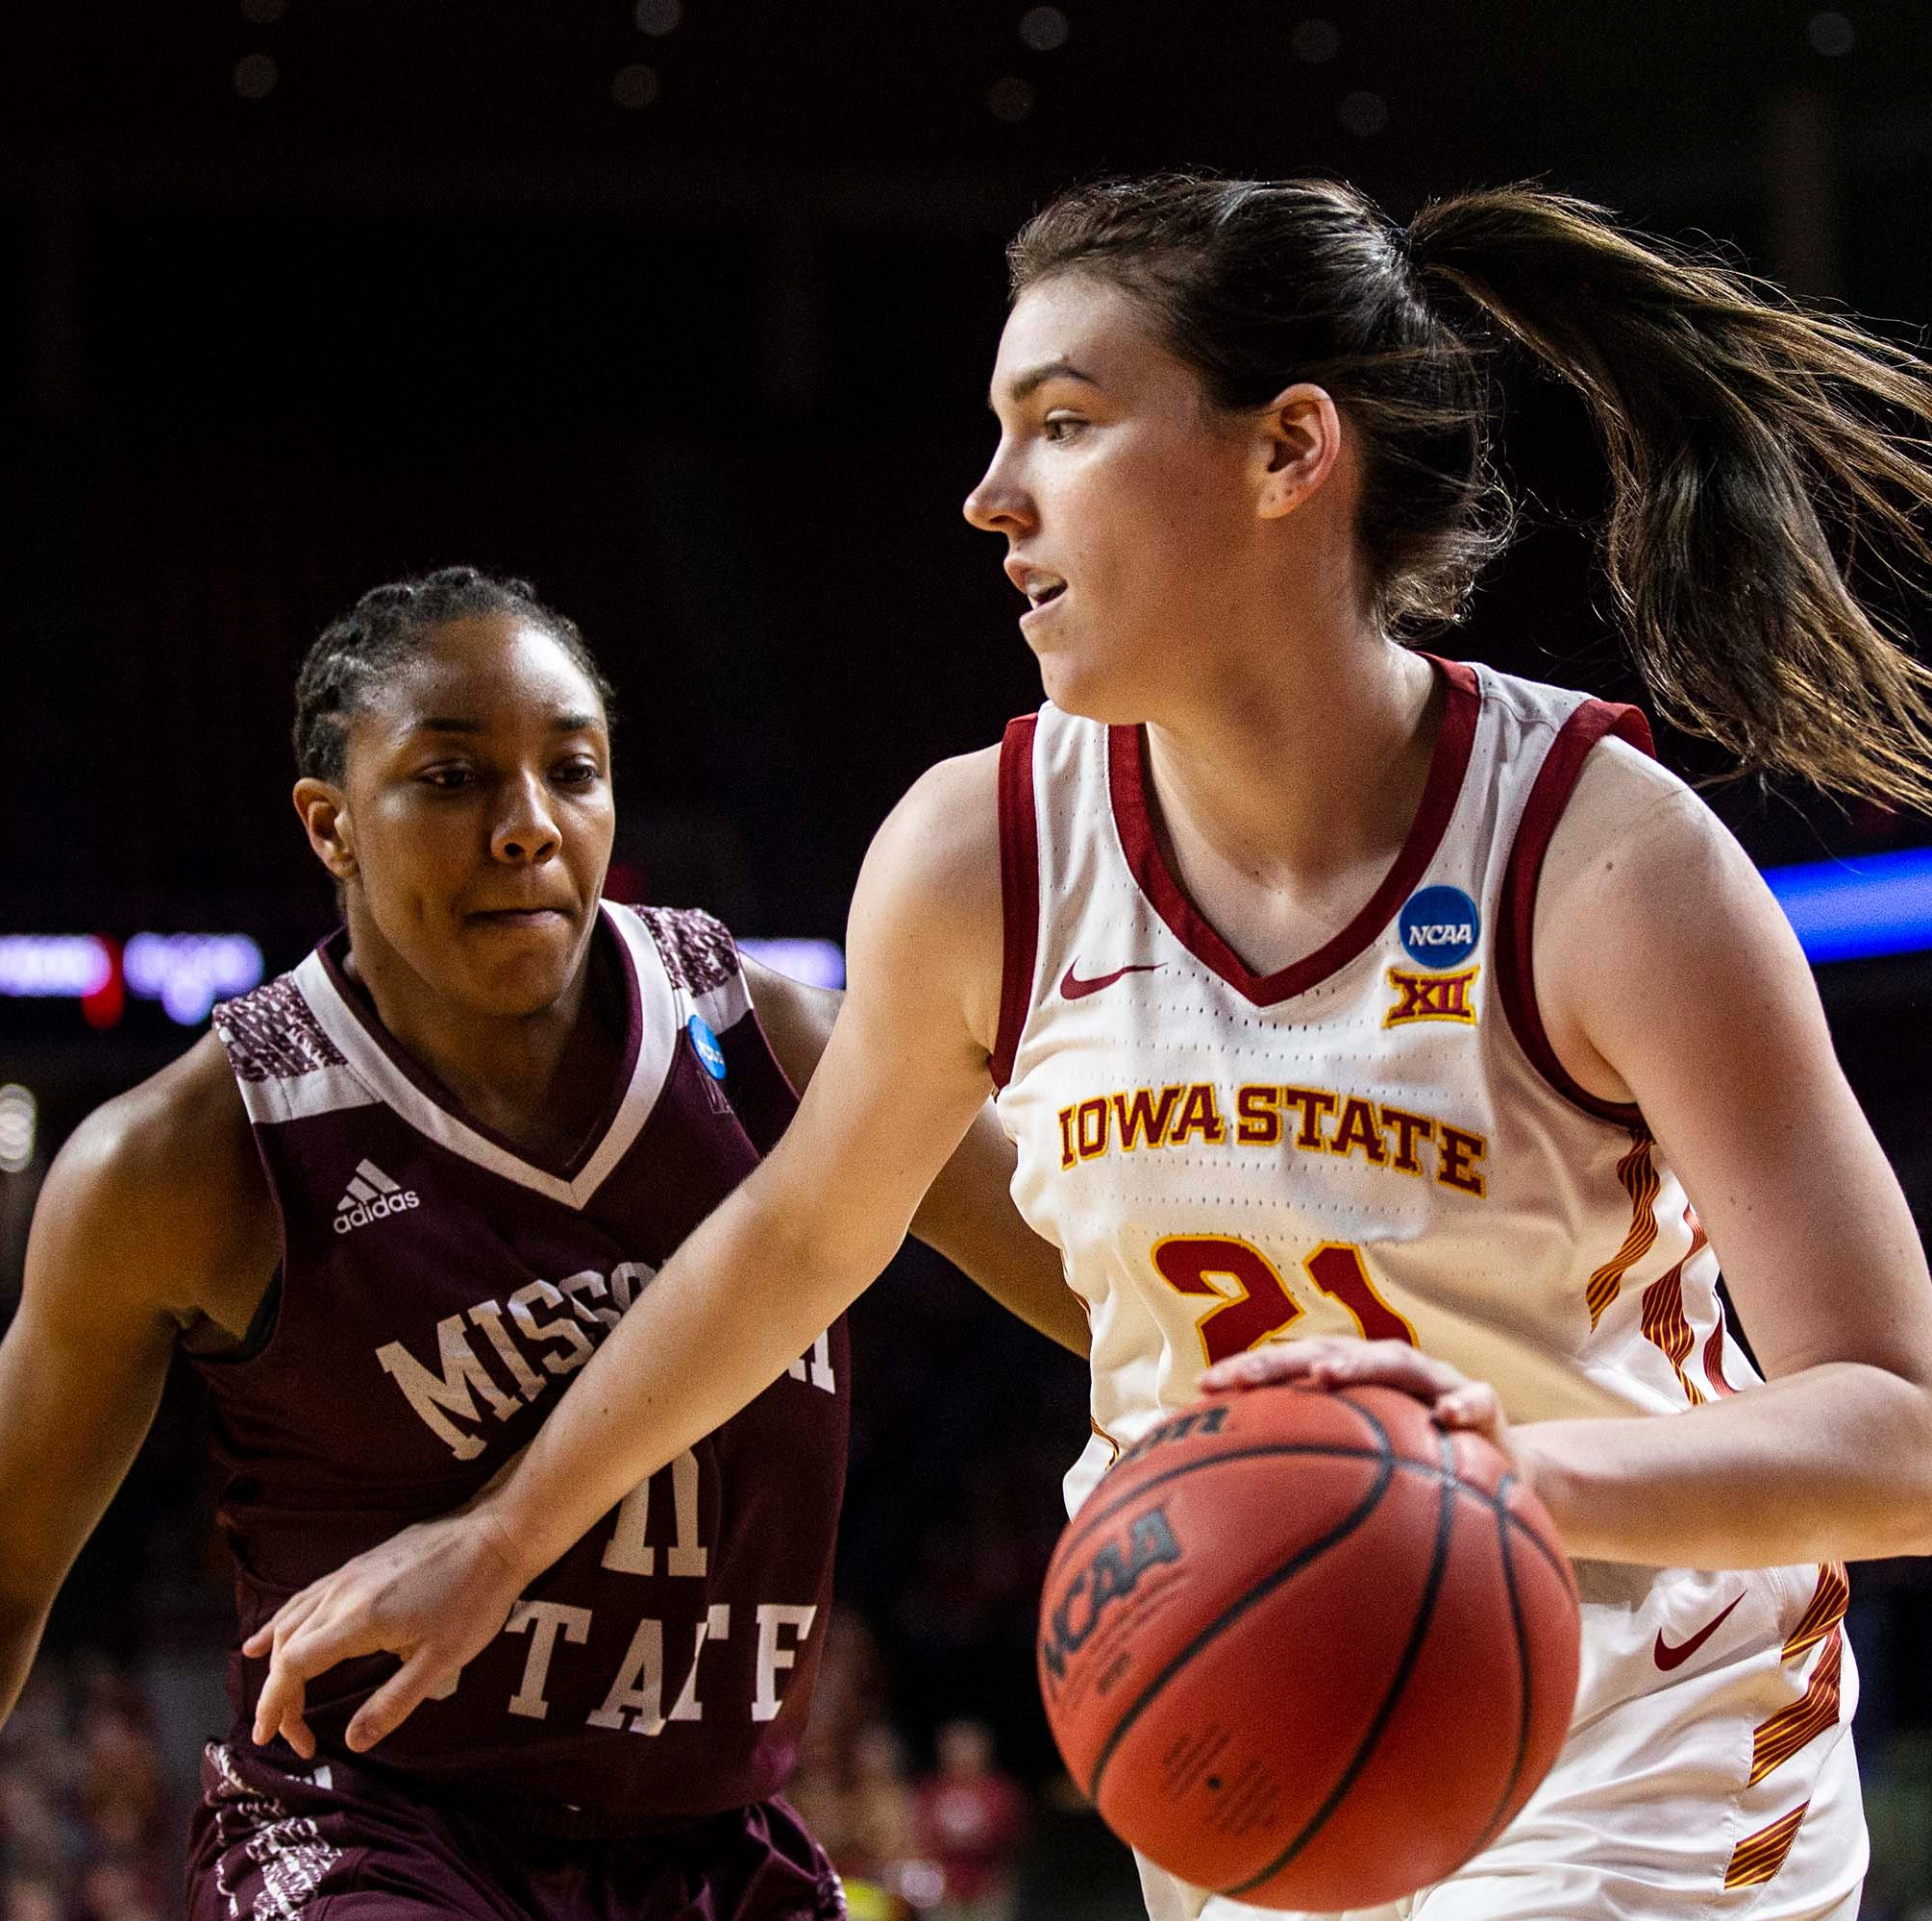 How Iowa State star Bridget Carleton landed on the radar of WNBA teams